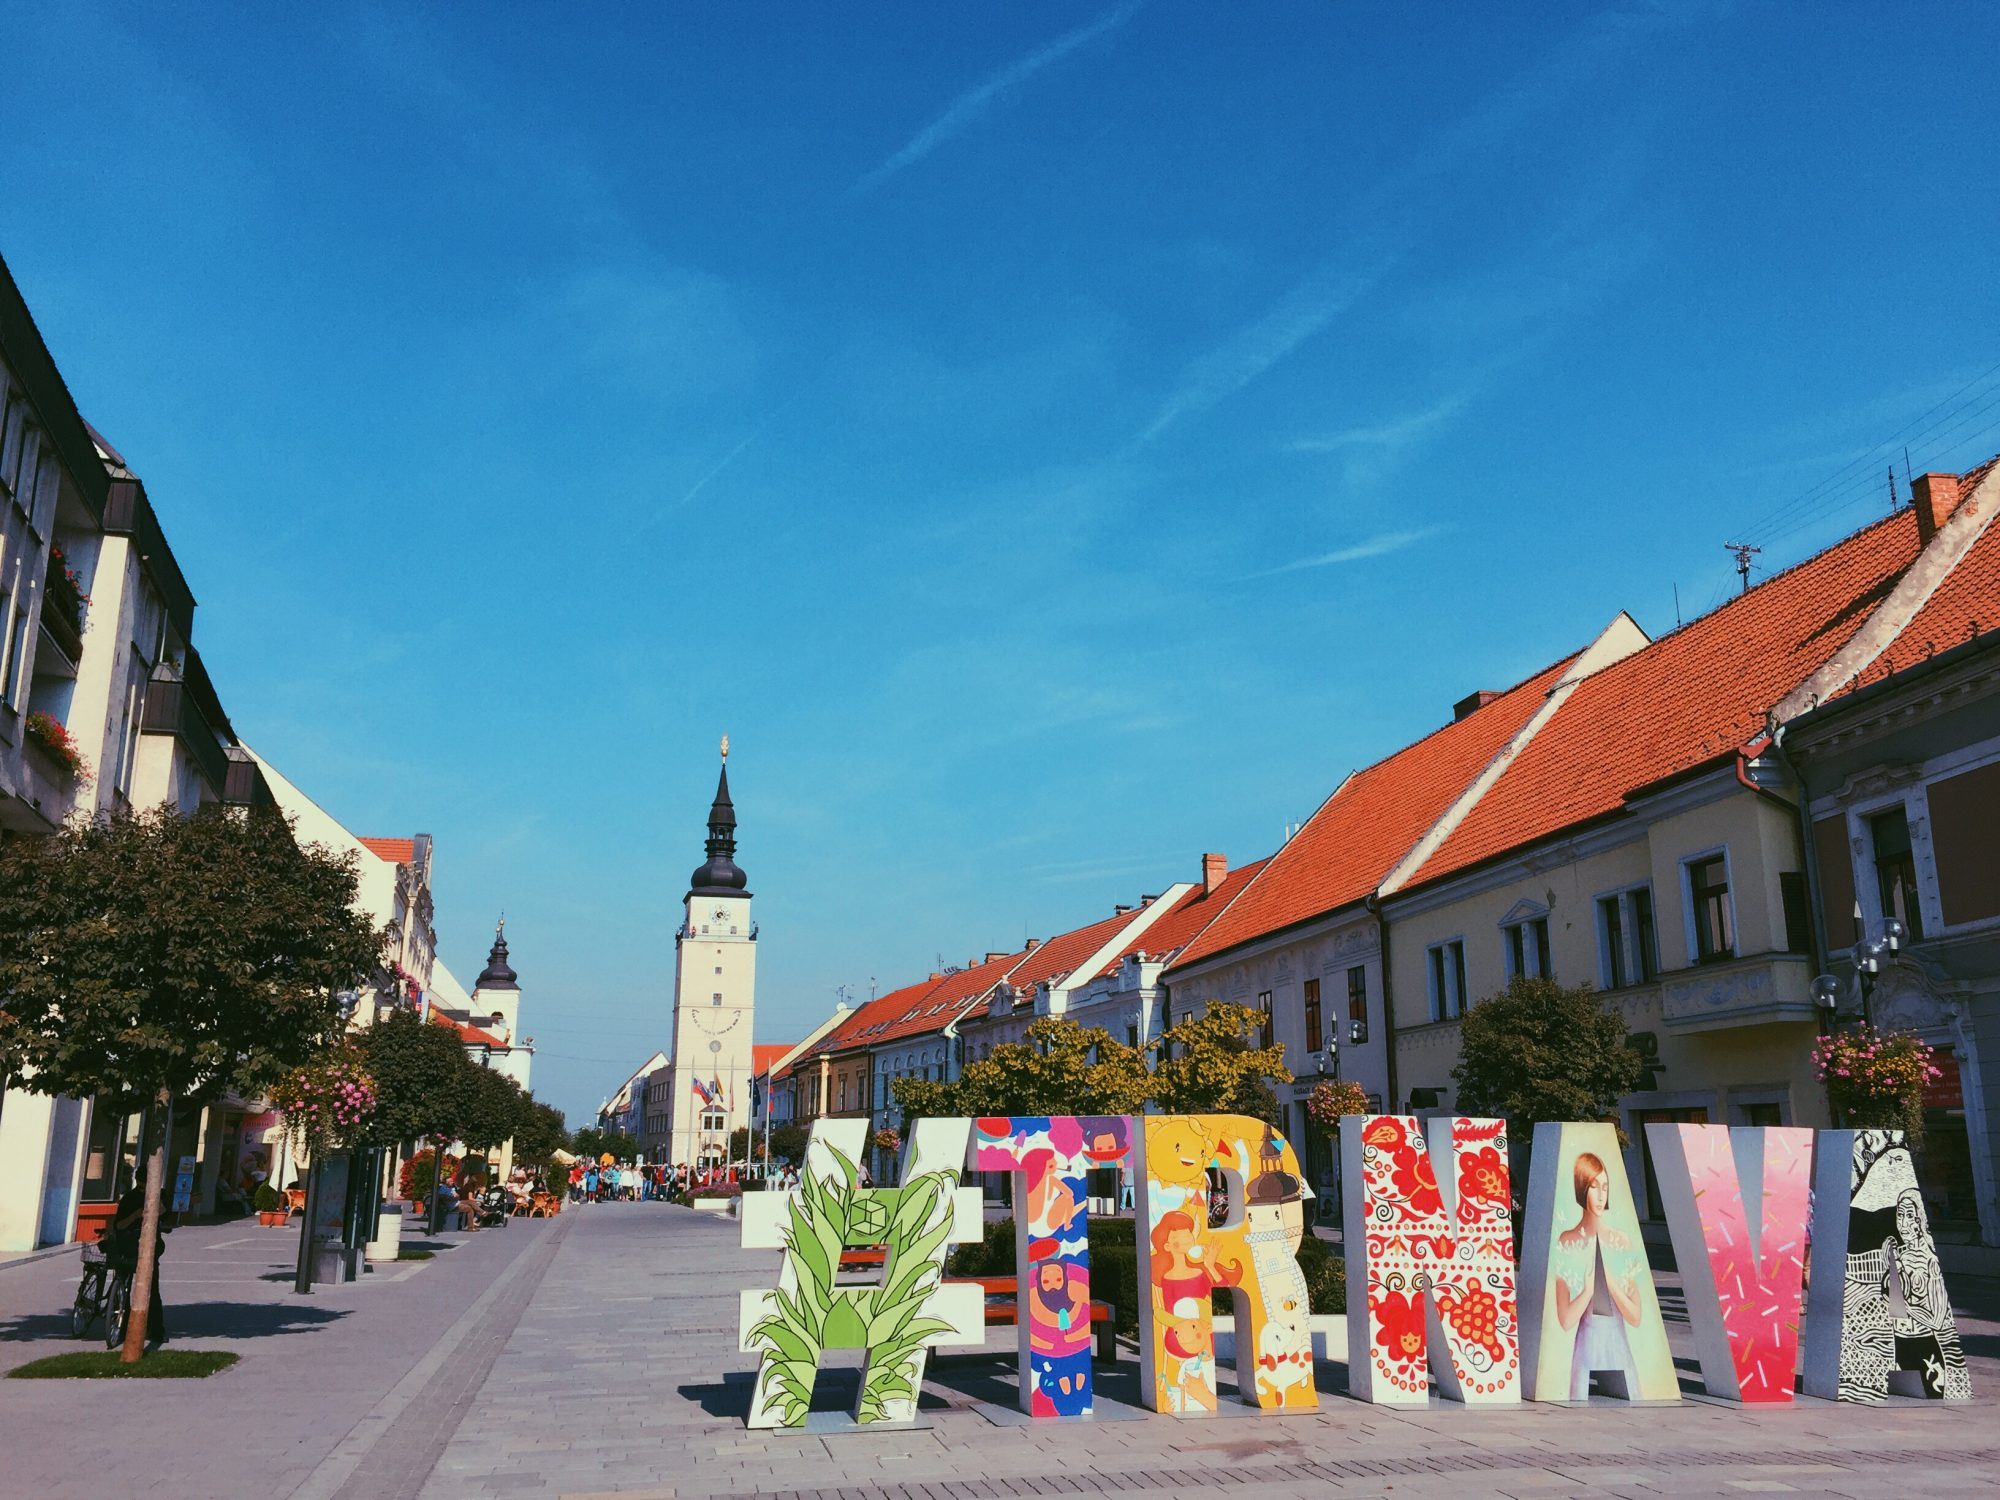 My family's hometown Trnava in Slovakia. Trnava is nicknamed Little Rome because there are so many churches in town.